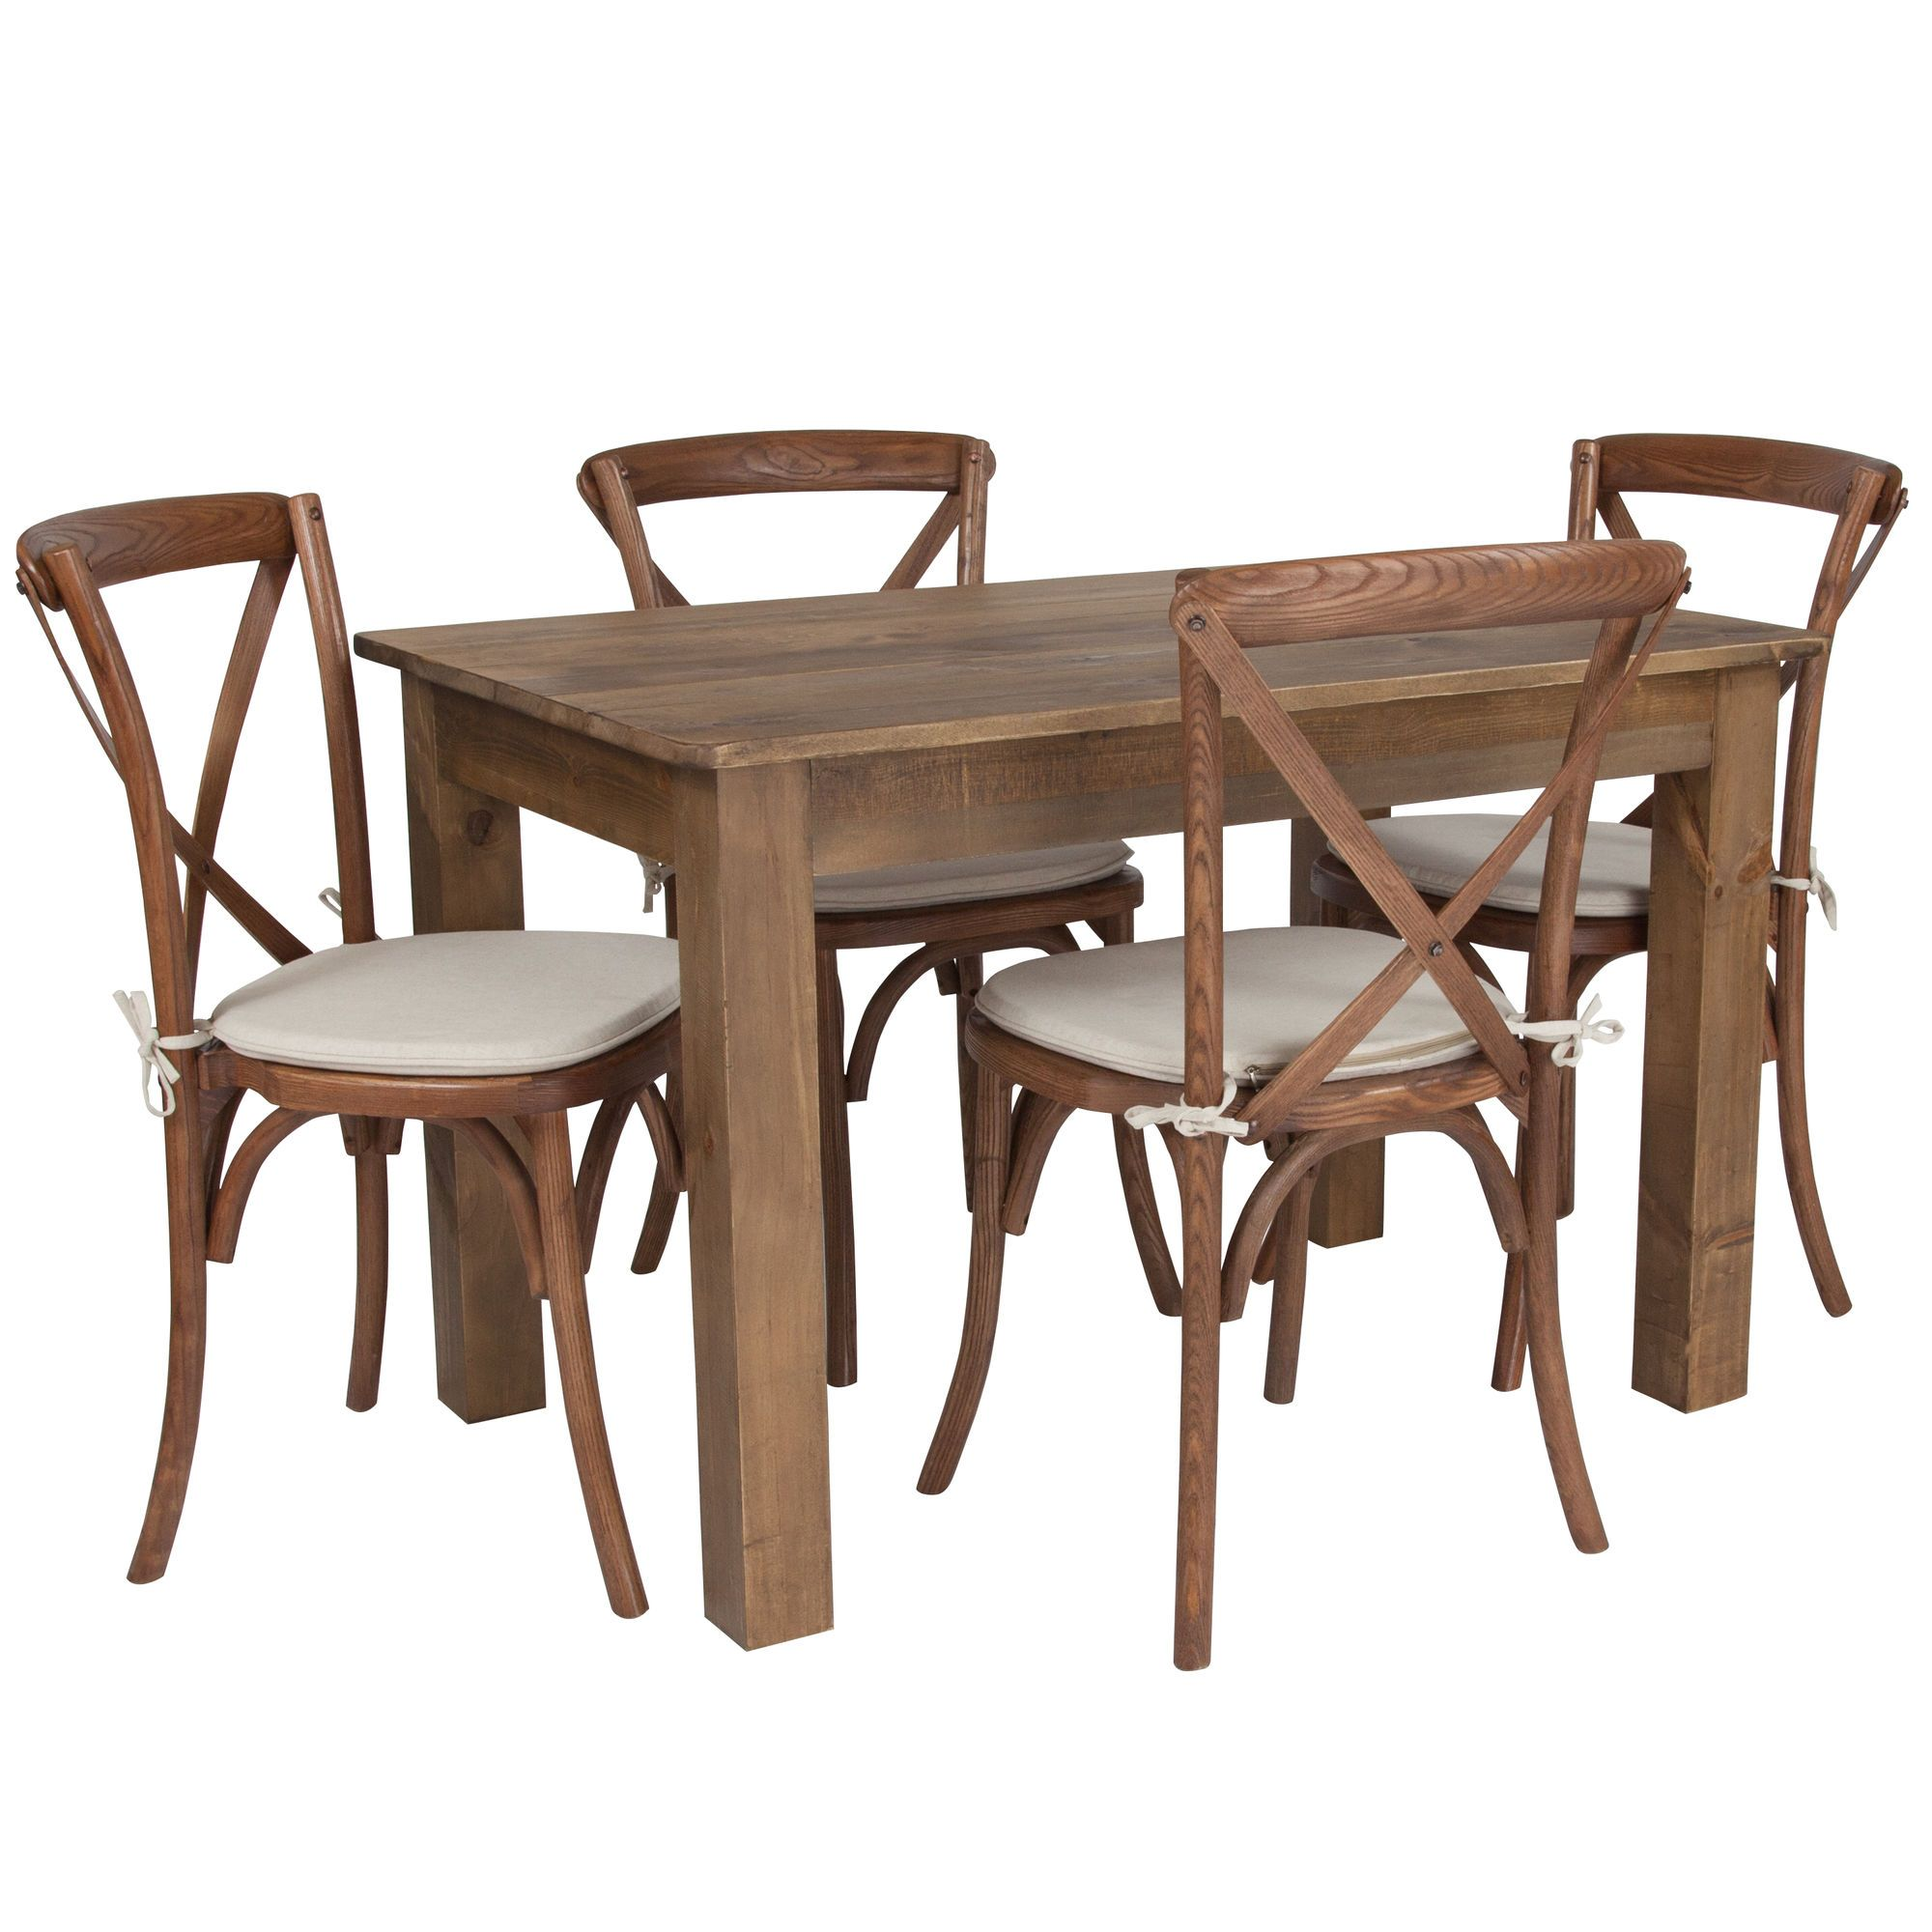 black farmhouse dining chairs set of 4